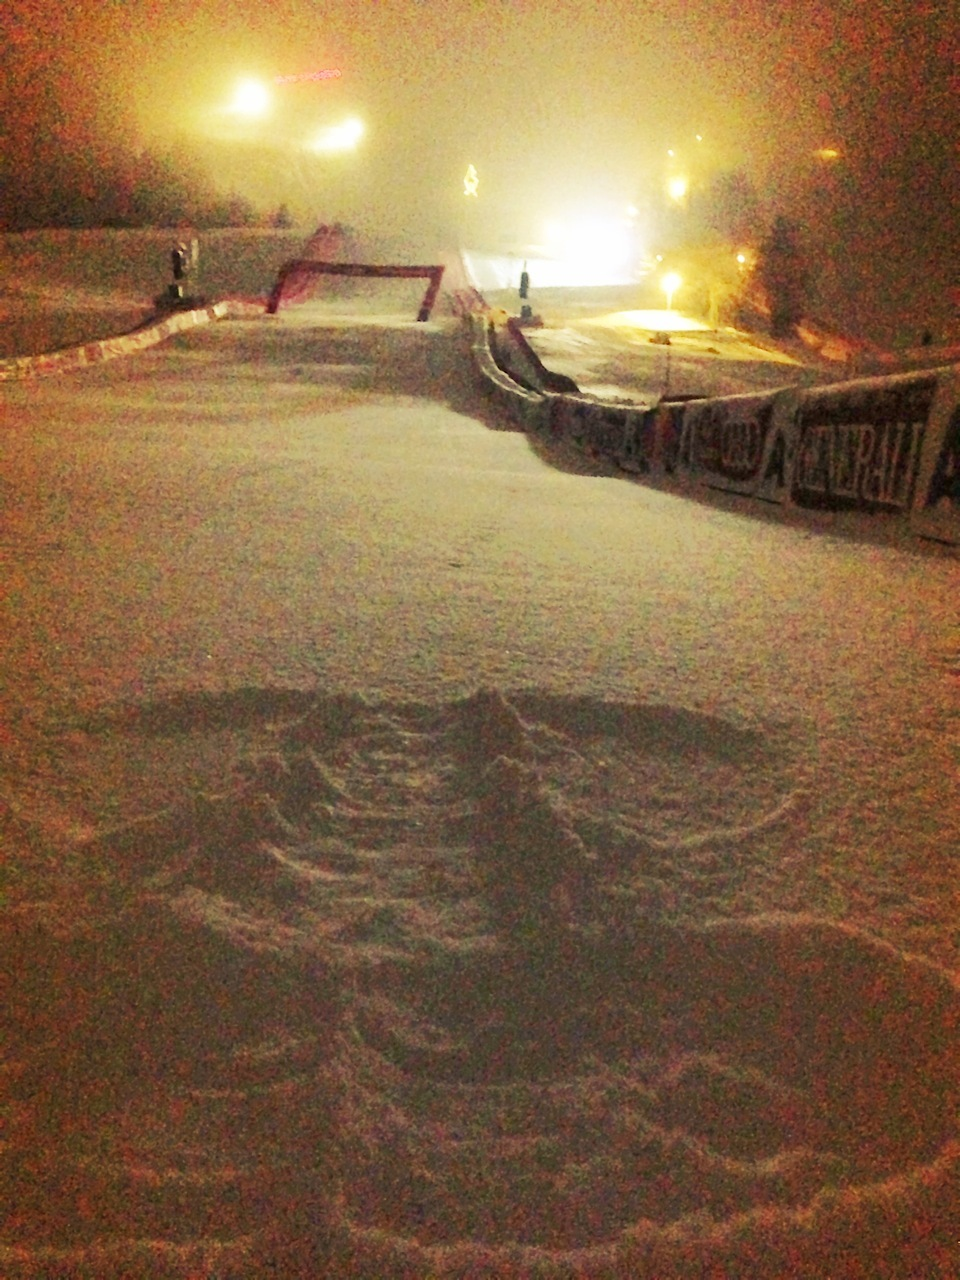 Travis' girlfriend, Canadian racer Marie-Michele Gagnon, made a snow angel the night before the first training run to protect Travis in the Kitzbuhel finish area.